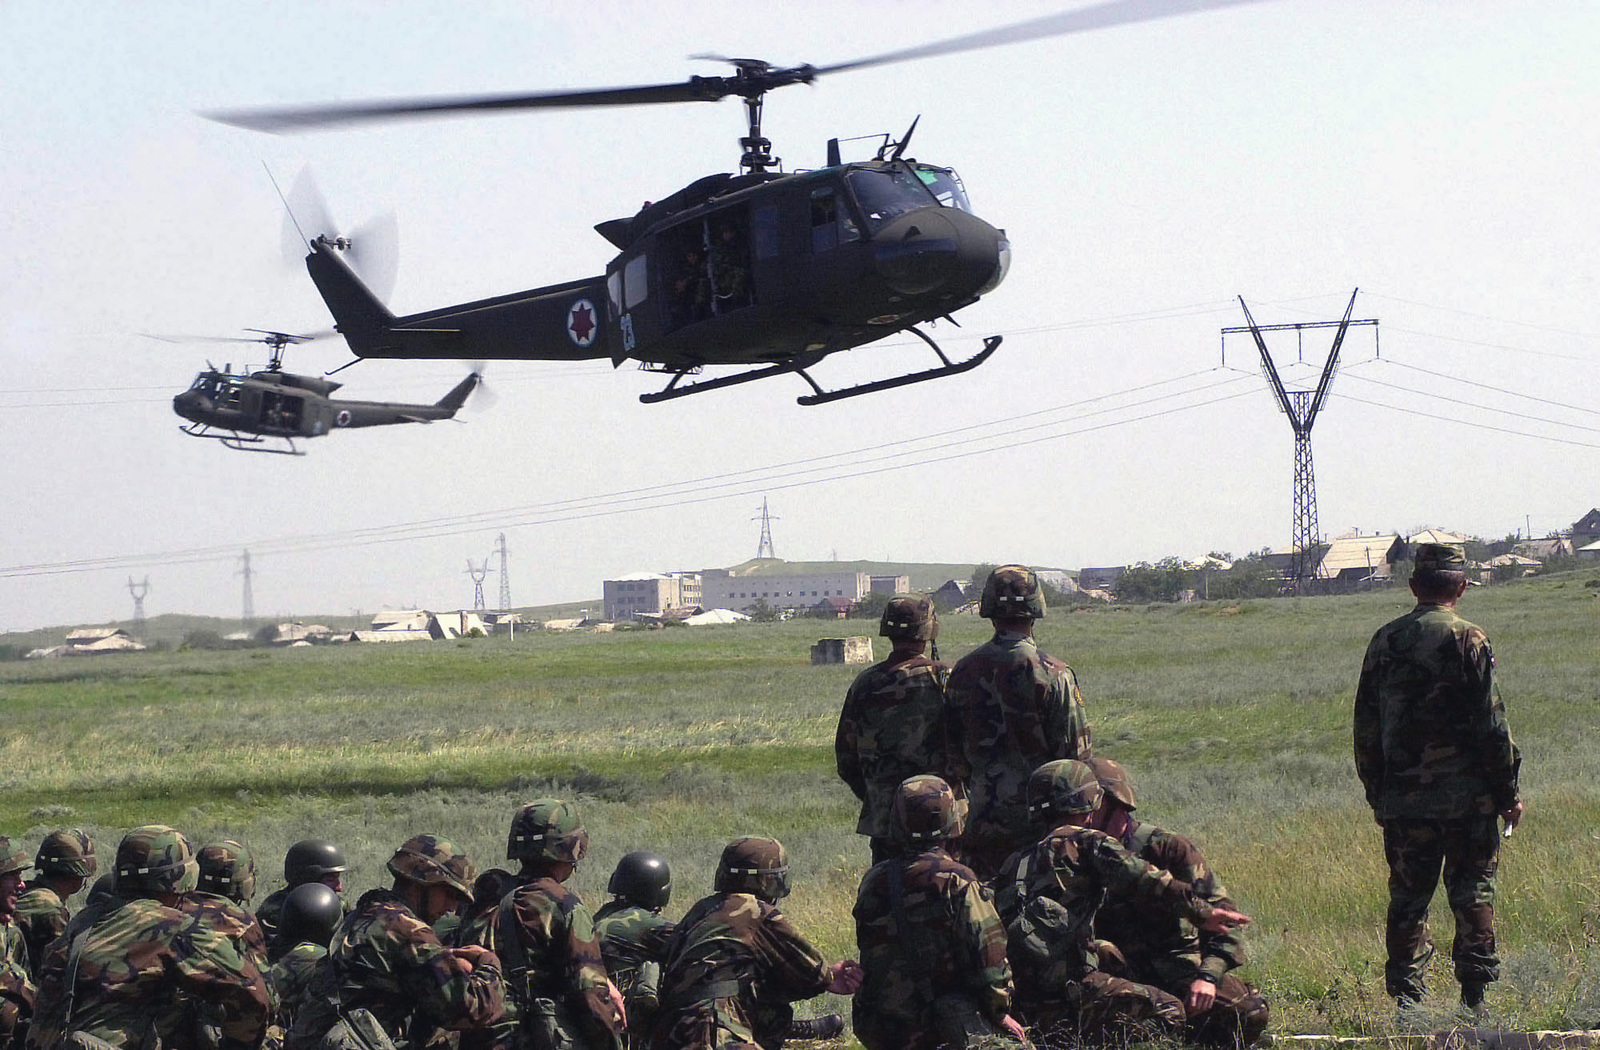 """Members of the Georgian Armed Forces sit and watch as Georgian UH-1H """"Huey"""" helicopters, lift off on an air mobile operational training flight, directed by US Air Force (USAF) personnel with the 6th Special Operations Squadron (SOS), out of Hurlburt Field, Florida, in support of the Georgia Train and Equip Program"""